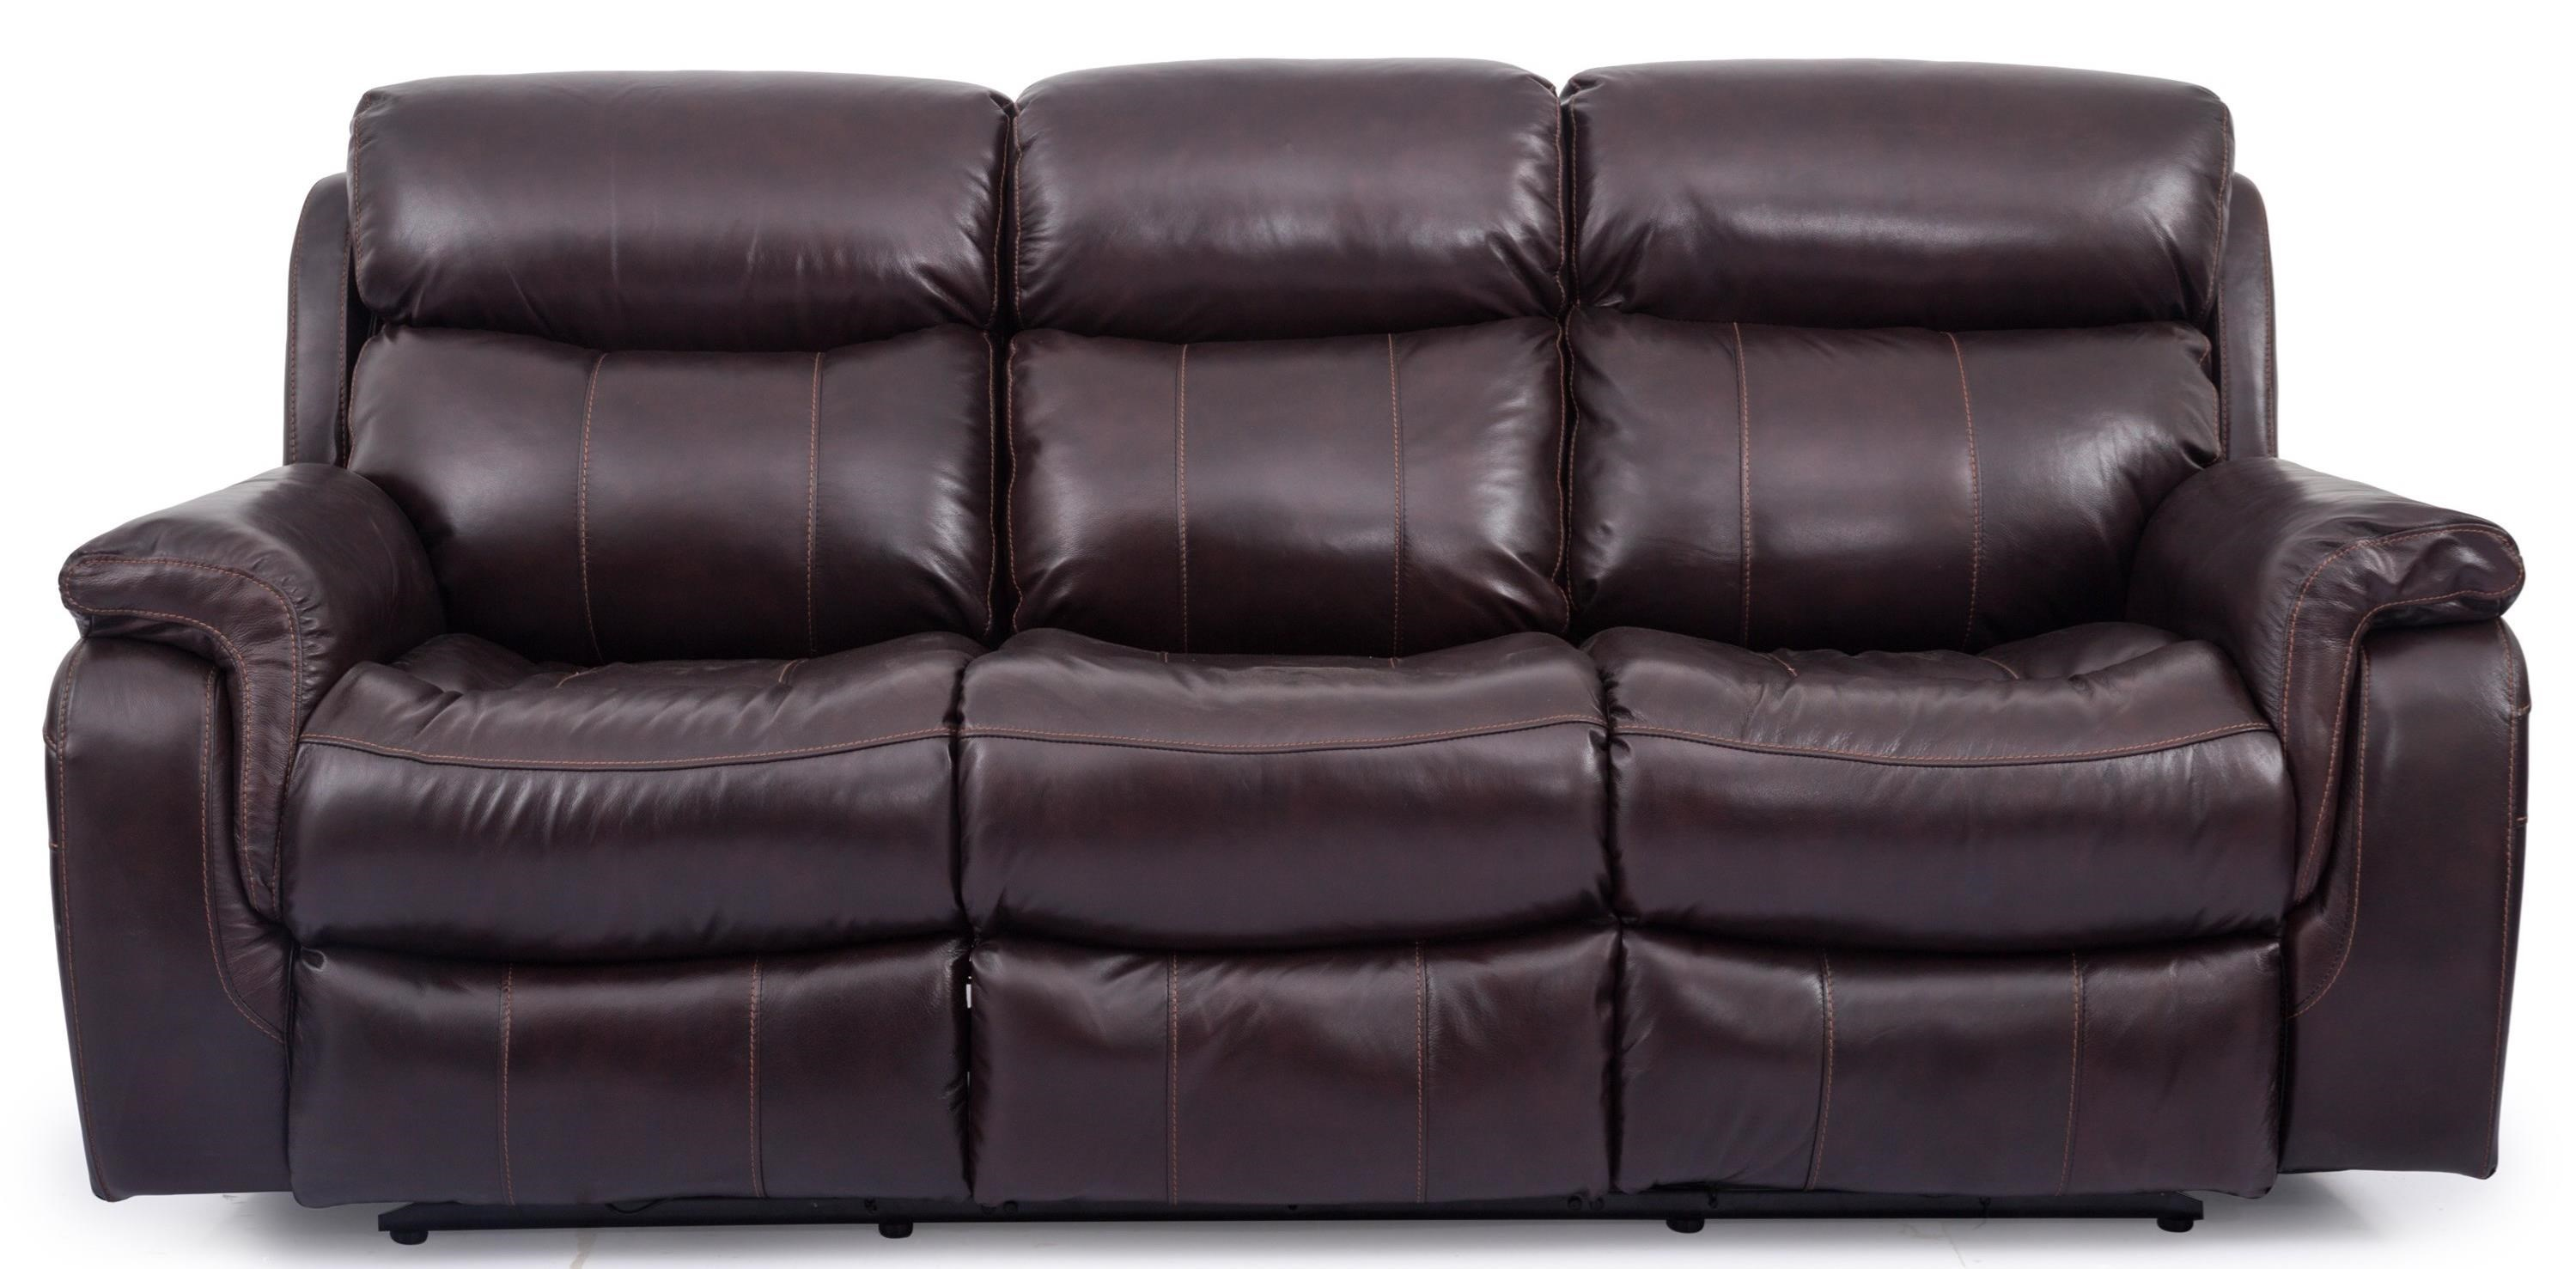 cheers sofa 9020 power reclining sofa with power headrests royal rh royalfurniture com powered reclining sofas power recliner sofa